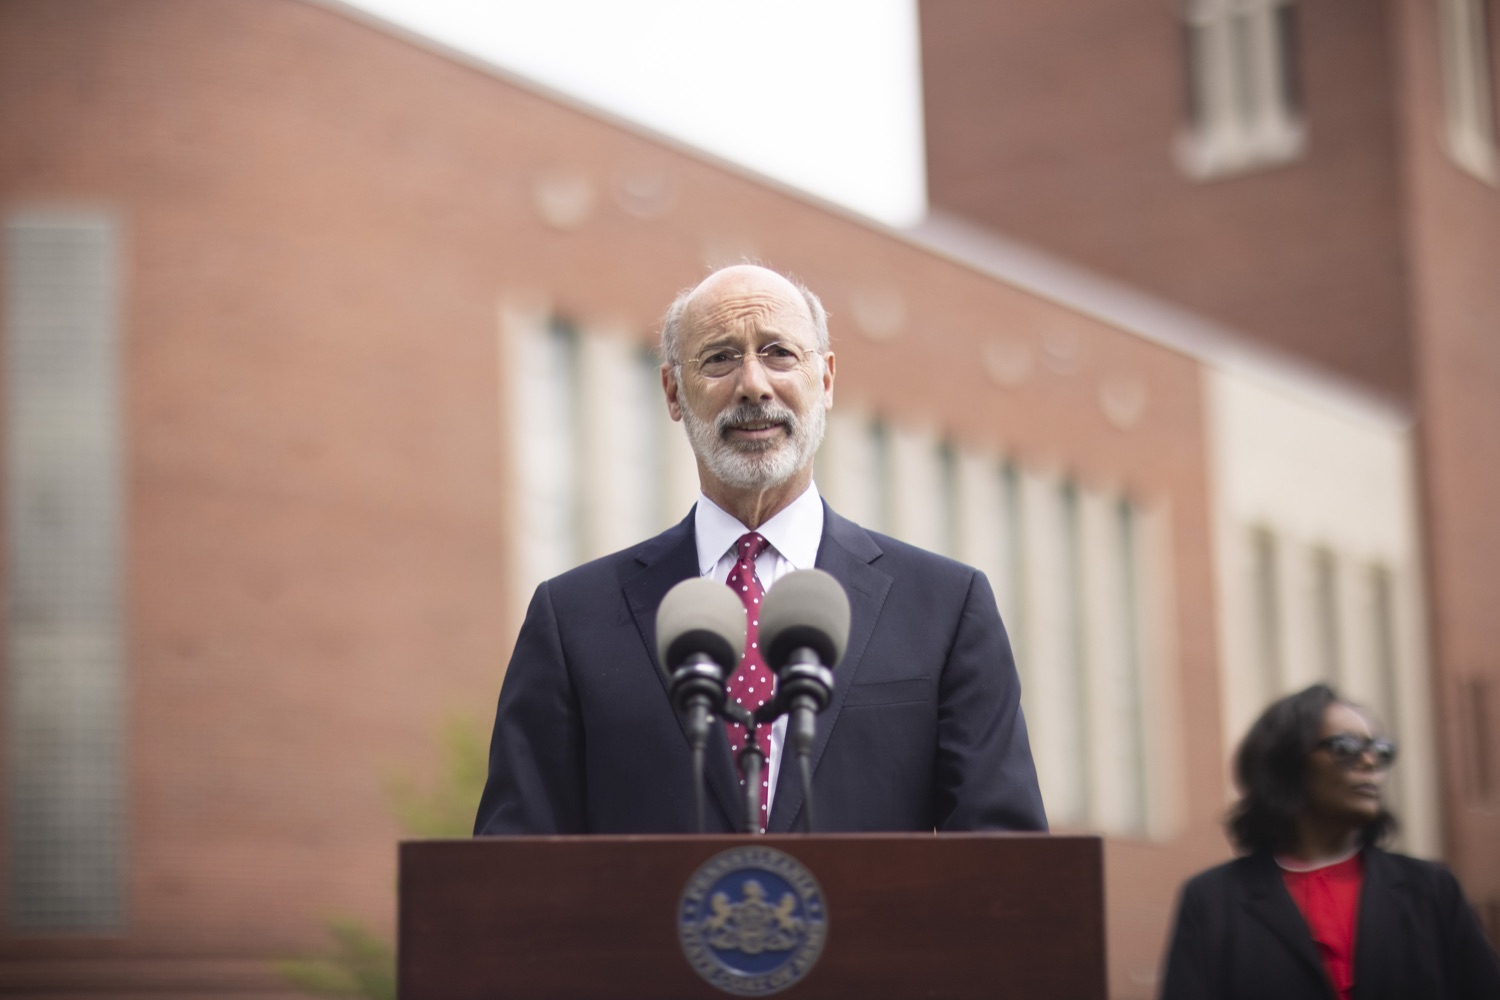 """<a href=""""https://filesource.wostreaming.net/commonwealthofpa/photo/18796_gov_charterSchool_dz_016.jpg"""" target=""""_blank"""">⇣Download Photo<br></a>Pennsylvania Governor Tom Wolf speaking with the press.  With overwhelming support among school districts for his charter school accountability plan, Governor Tom Wolf visited J.P. McCaskey High School in Lancaster today to discuss his bipartisan proposal that saves an estimated $395 million a year. Lancaster, PA  June 01, 2021"""